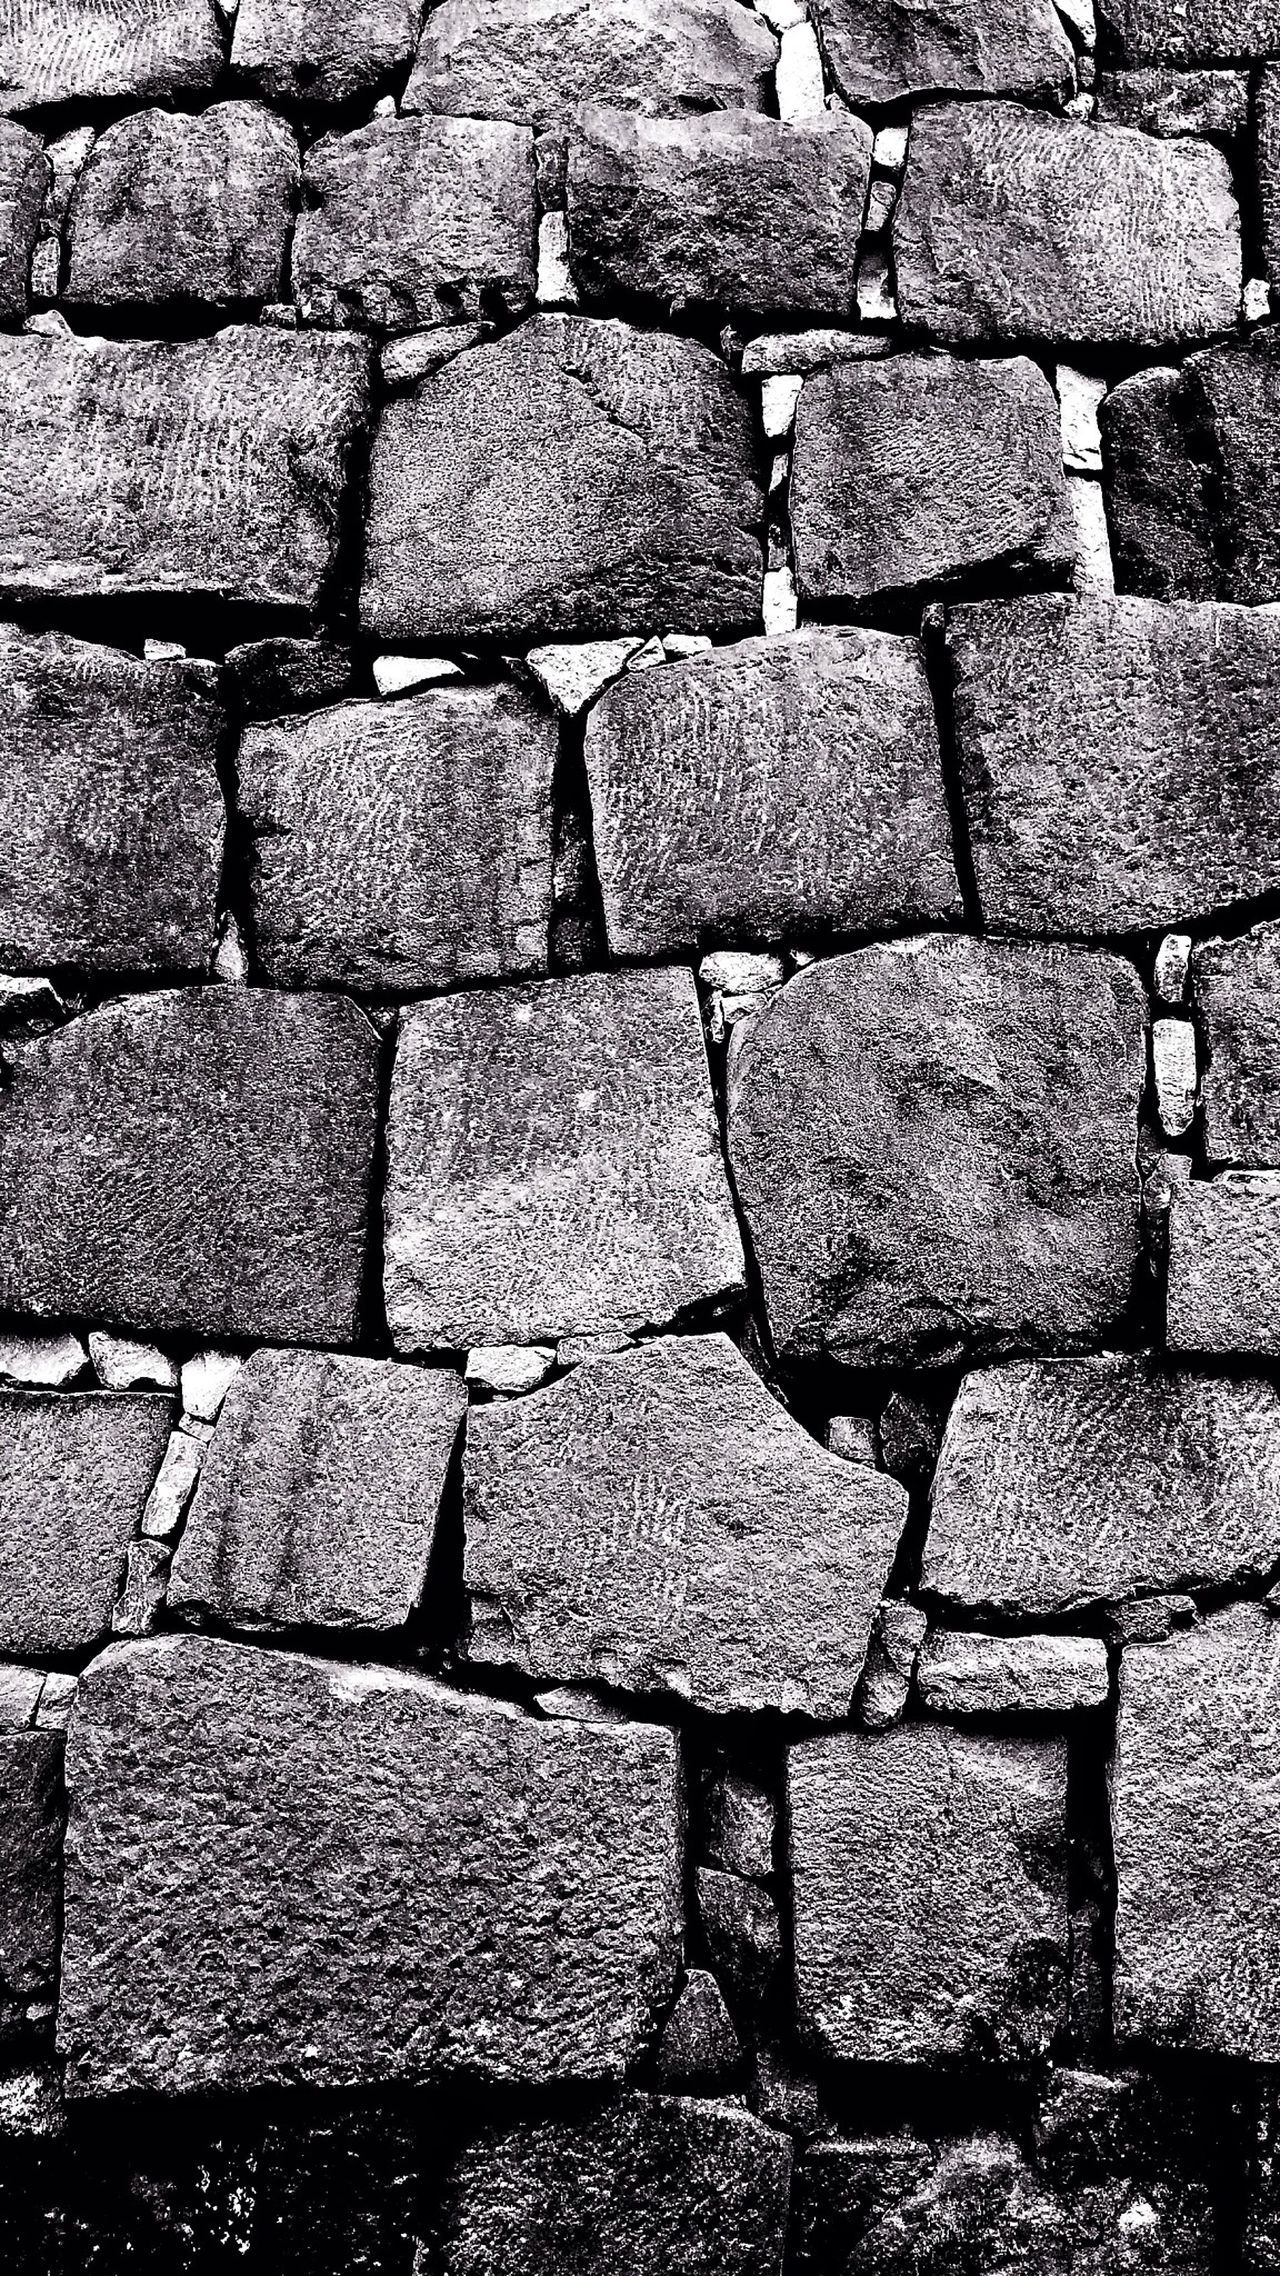 Blackandwhite Bw_collection Stone Wall